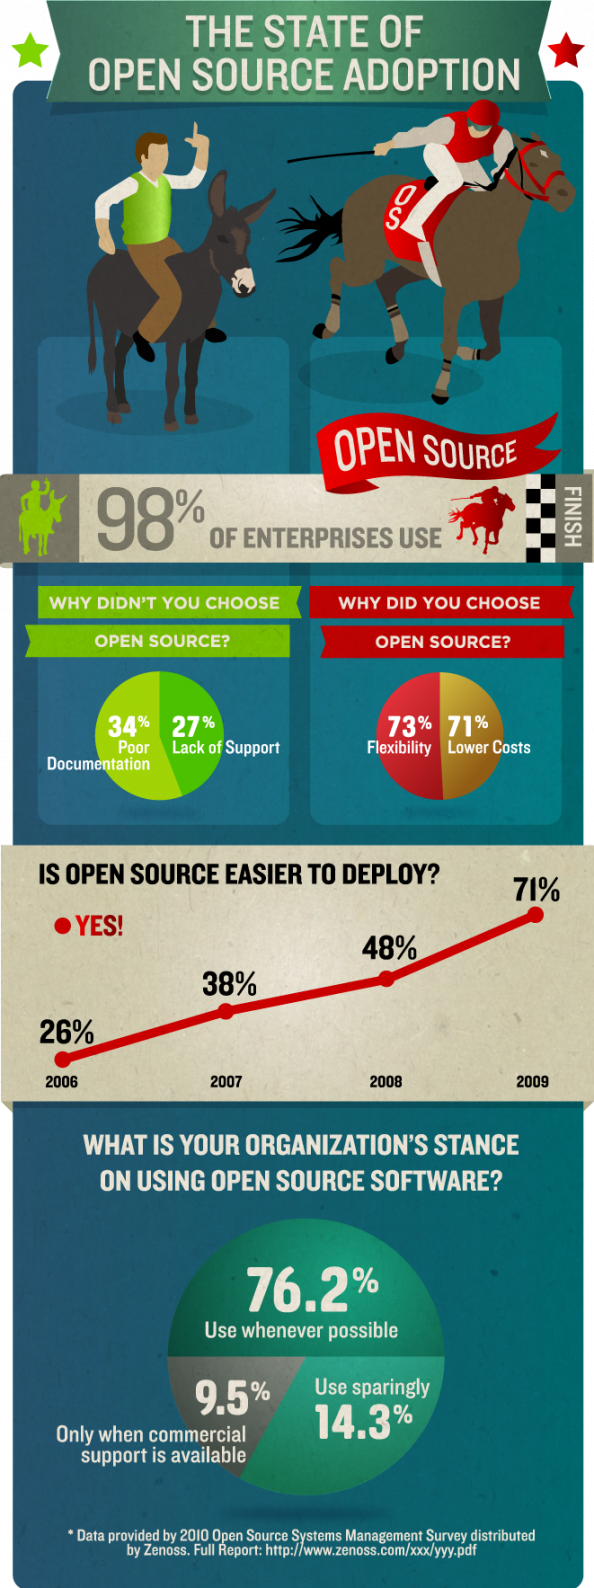 The State of Open Source Adoption Infographic